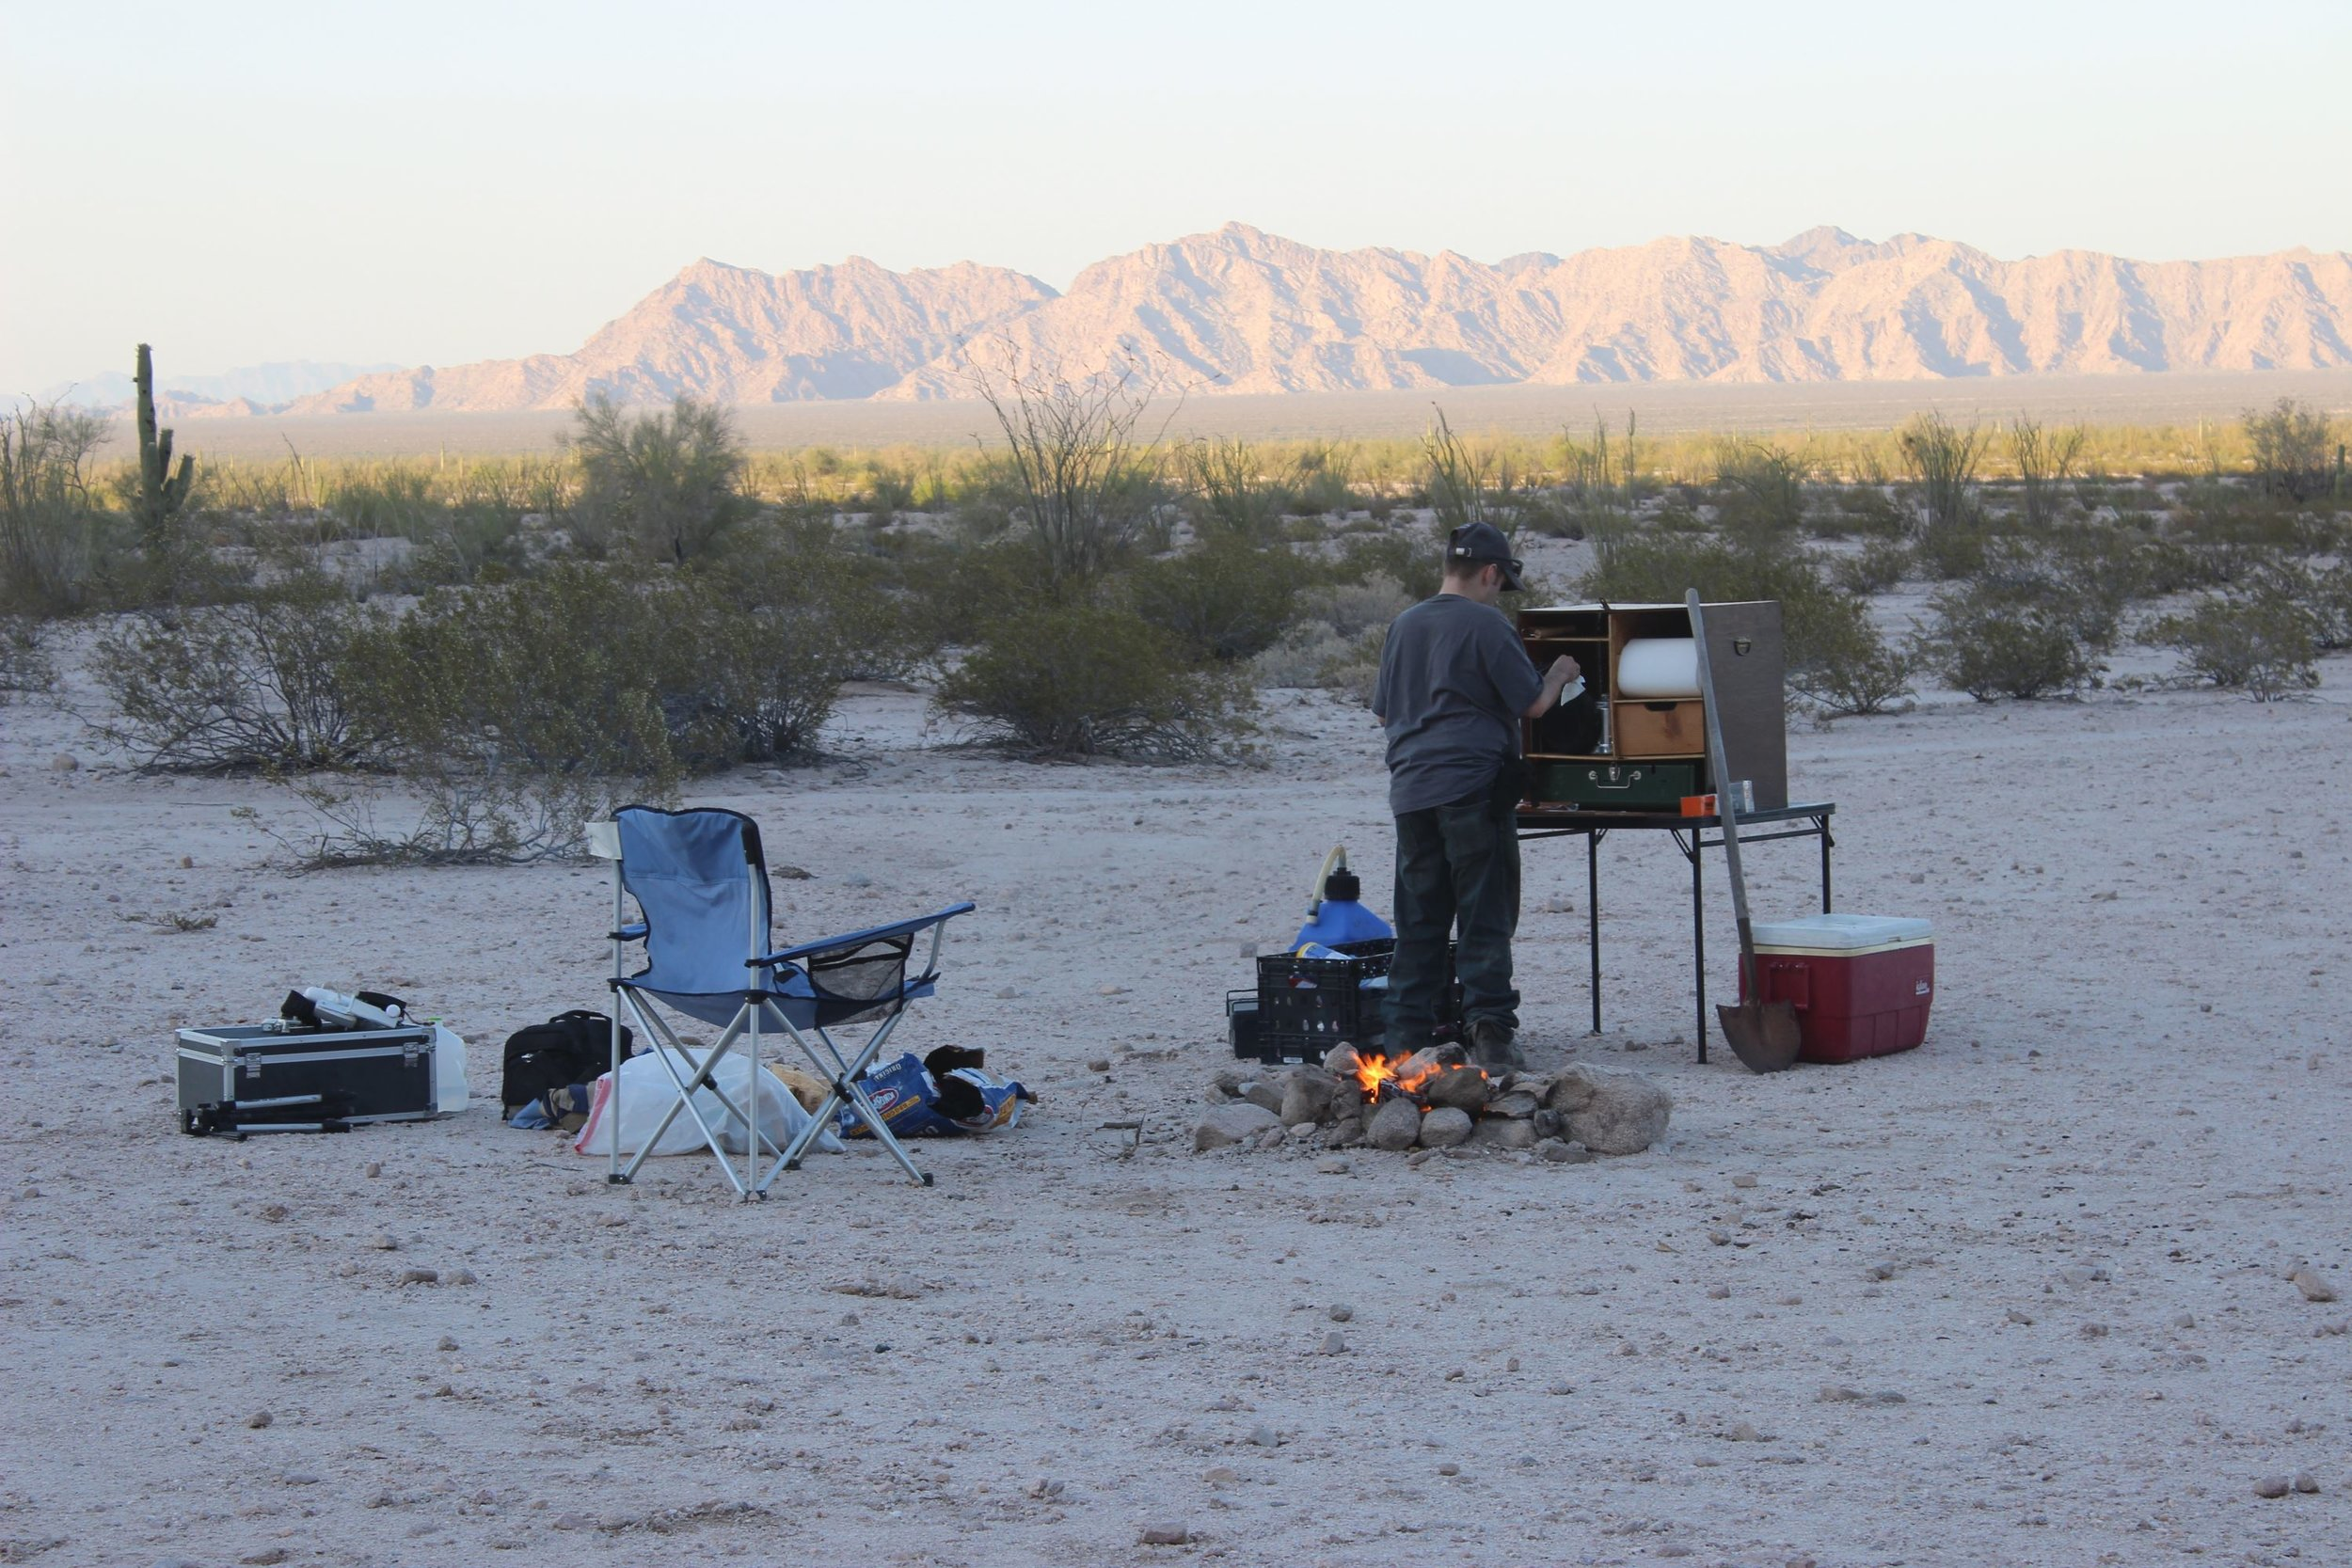 Prepping dinner with the Cabeza Prieta Mountains in the background.